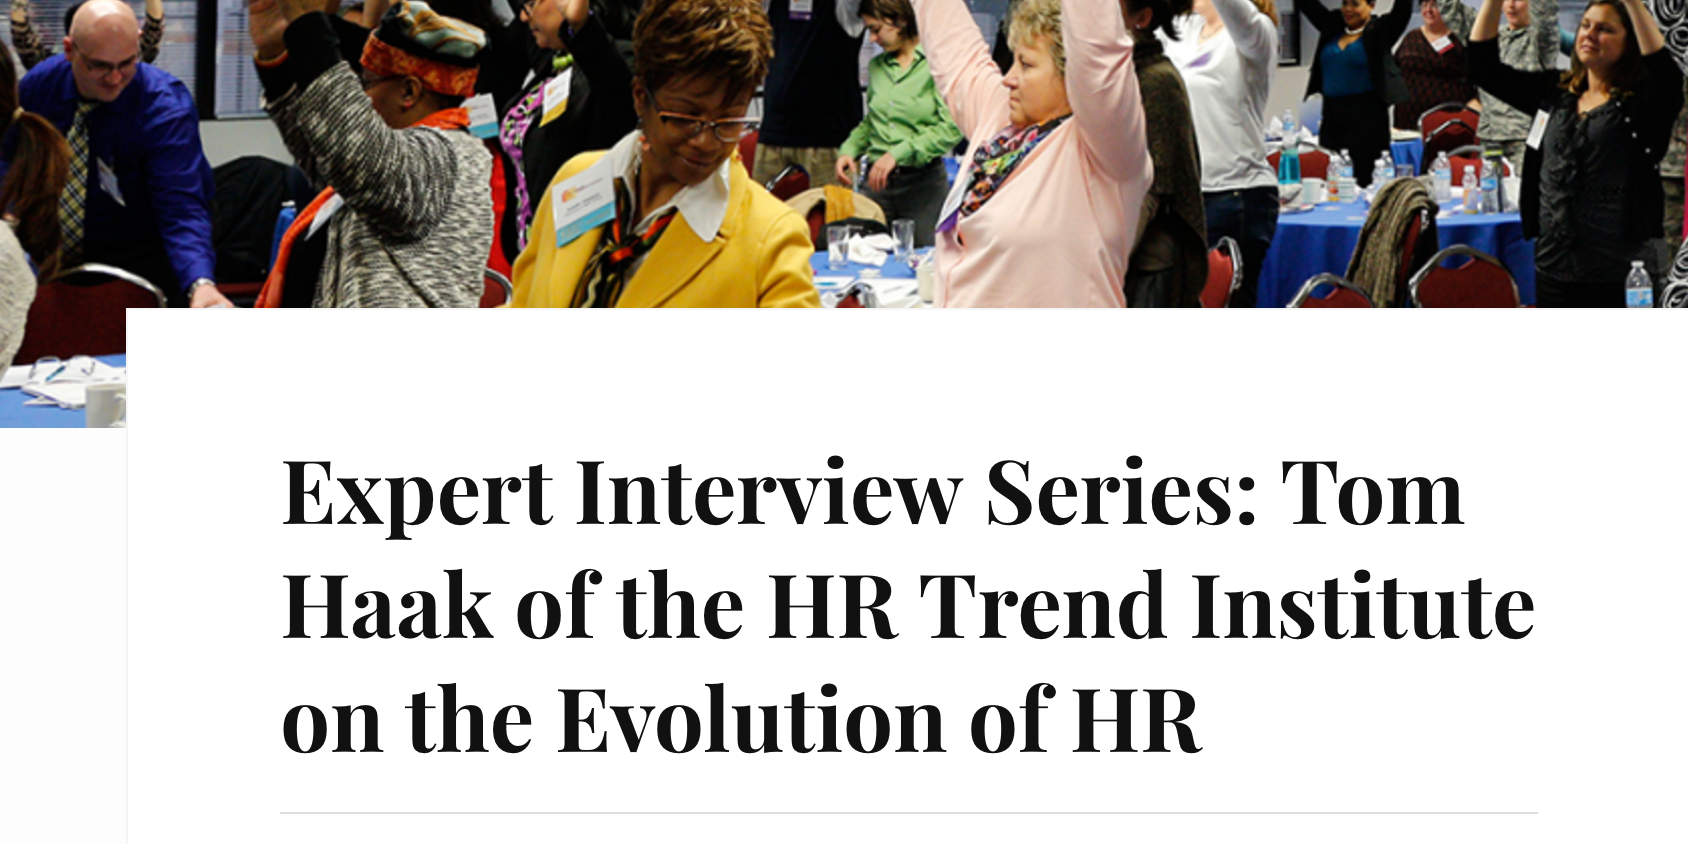 The evolution of HR